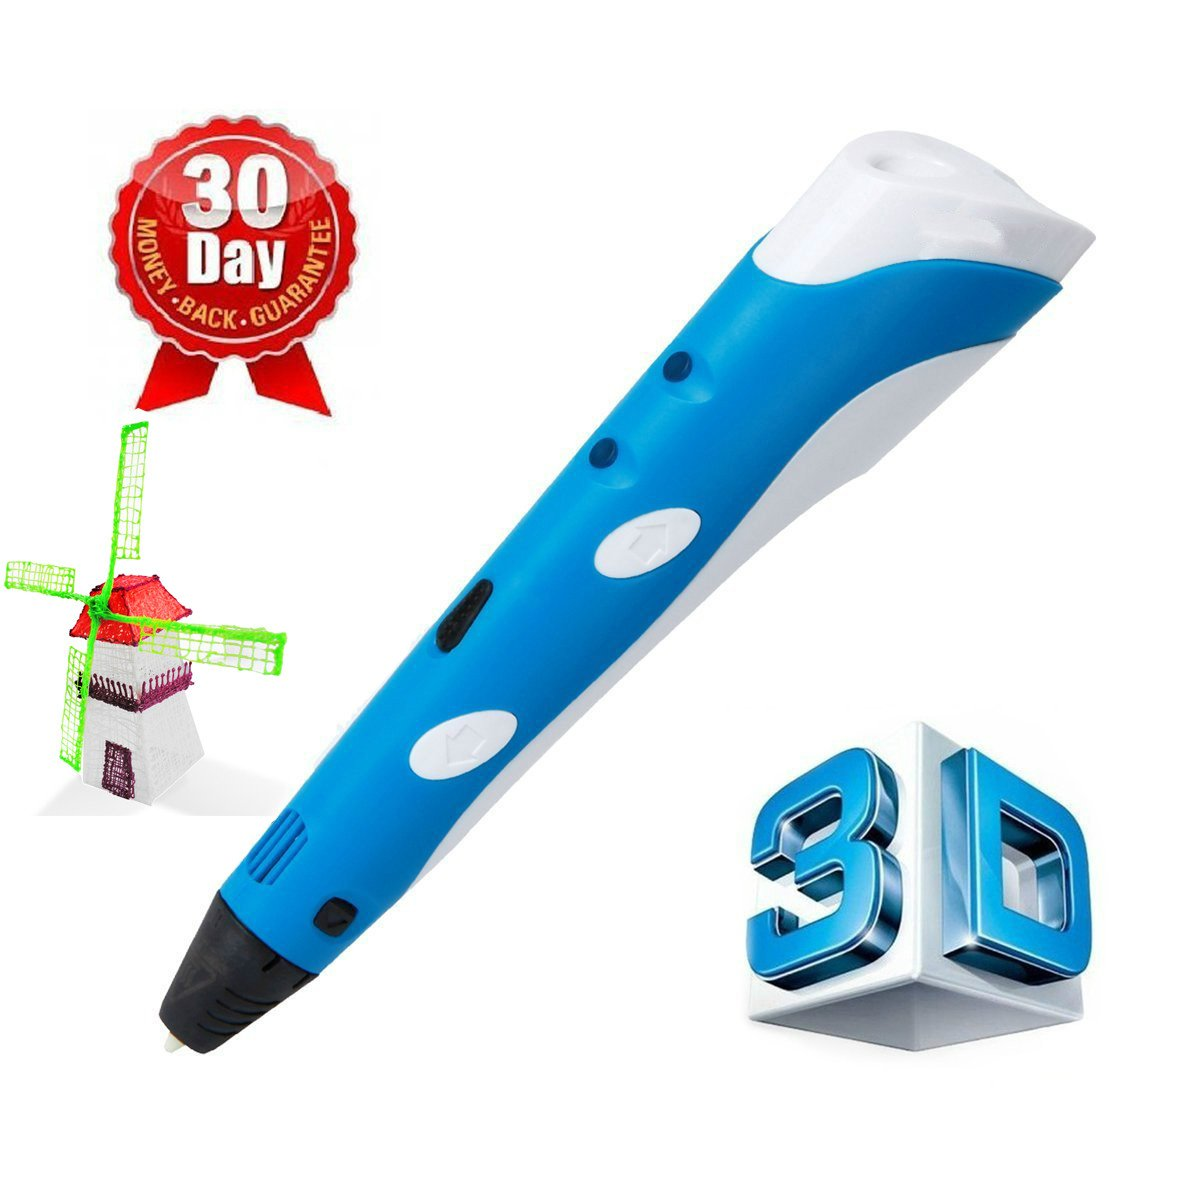 Glyby Intelligent 3D printing pen